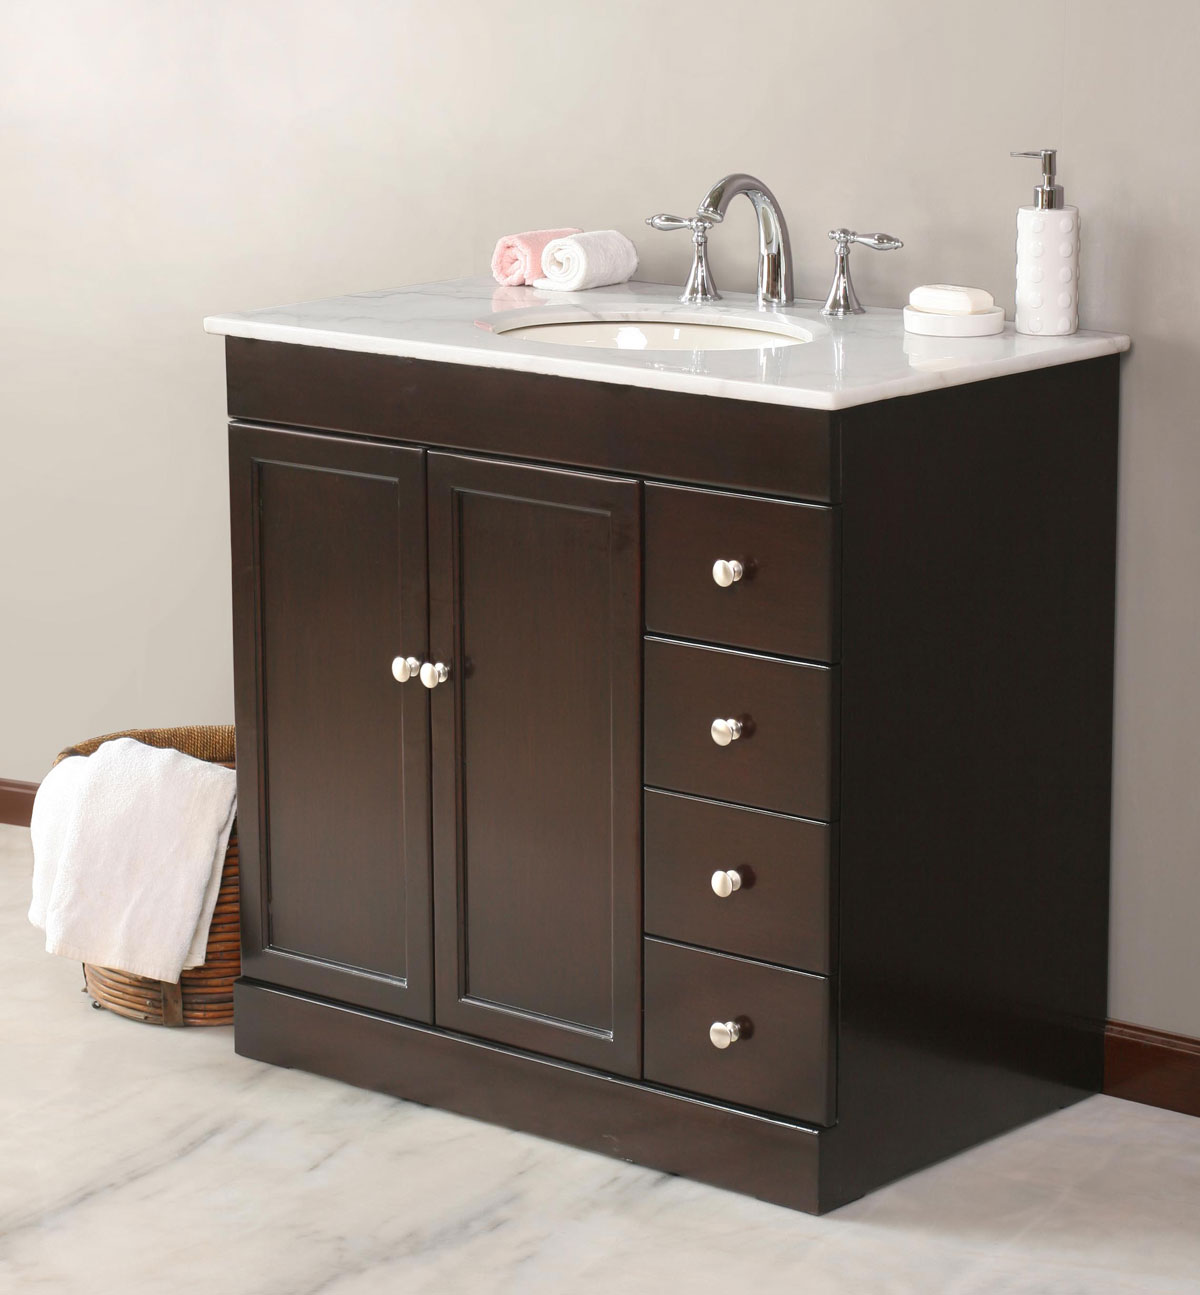 Bathroom Vanity With Top Included